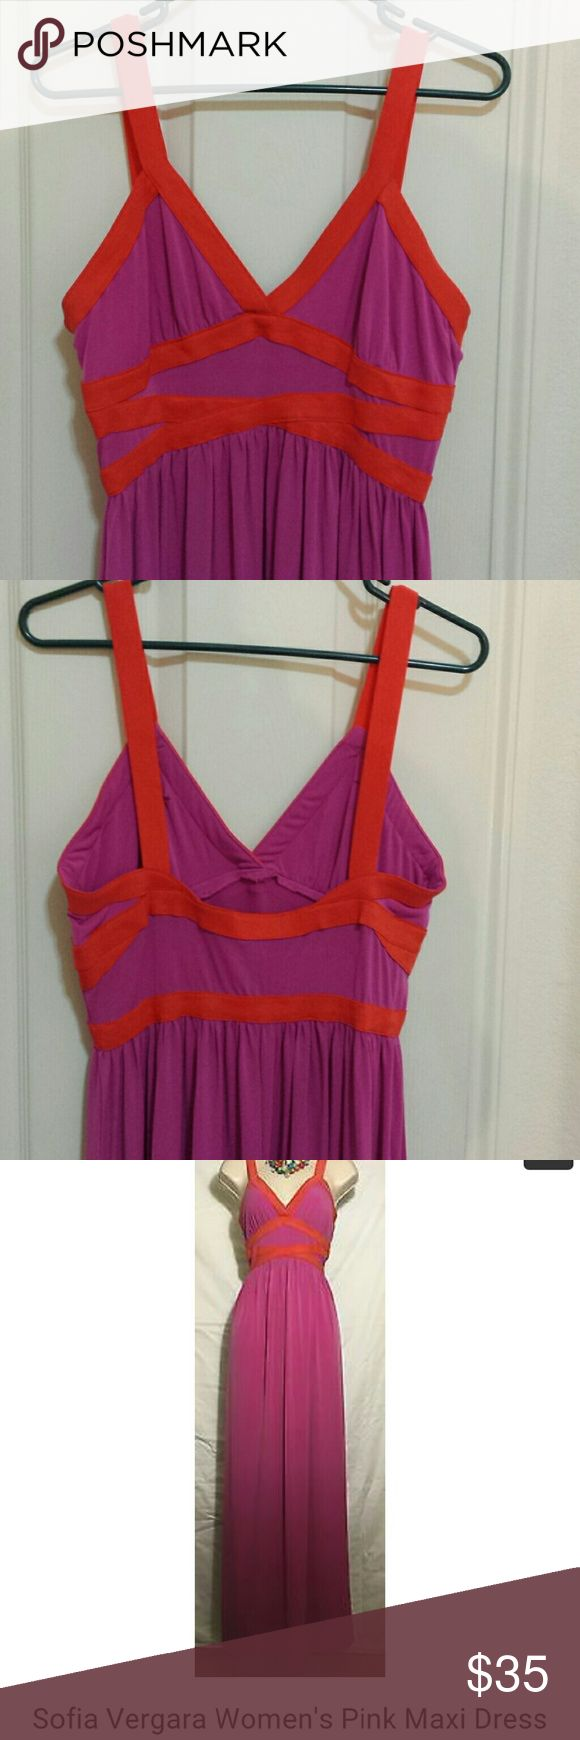 Sofia Vegara Pink Maxi Dress The orange is elastic No stains/snags Only worn once or twice From shoulder to hem is 56 in long Armpit to armpit 17 1/2 in  Bodice is 14 in wide Sofia Vegara Dresses Maxi